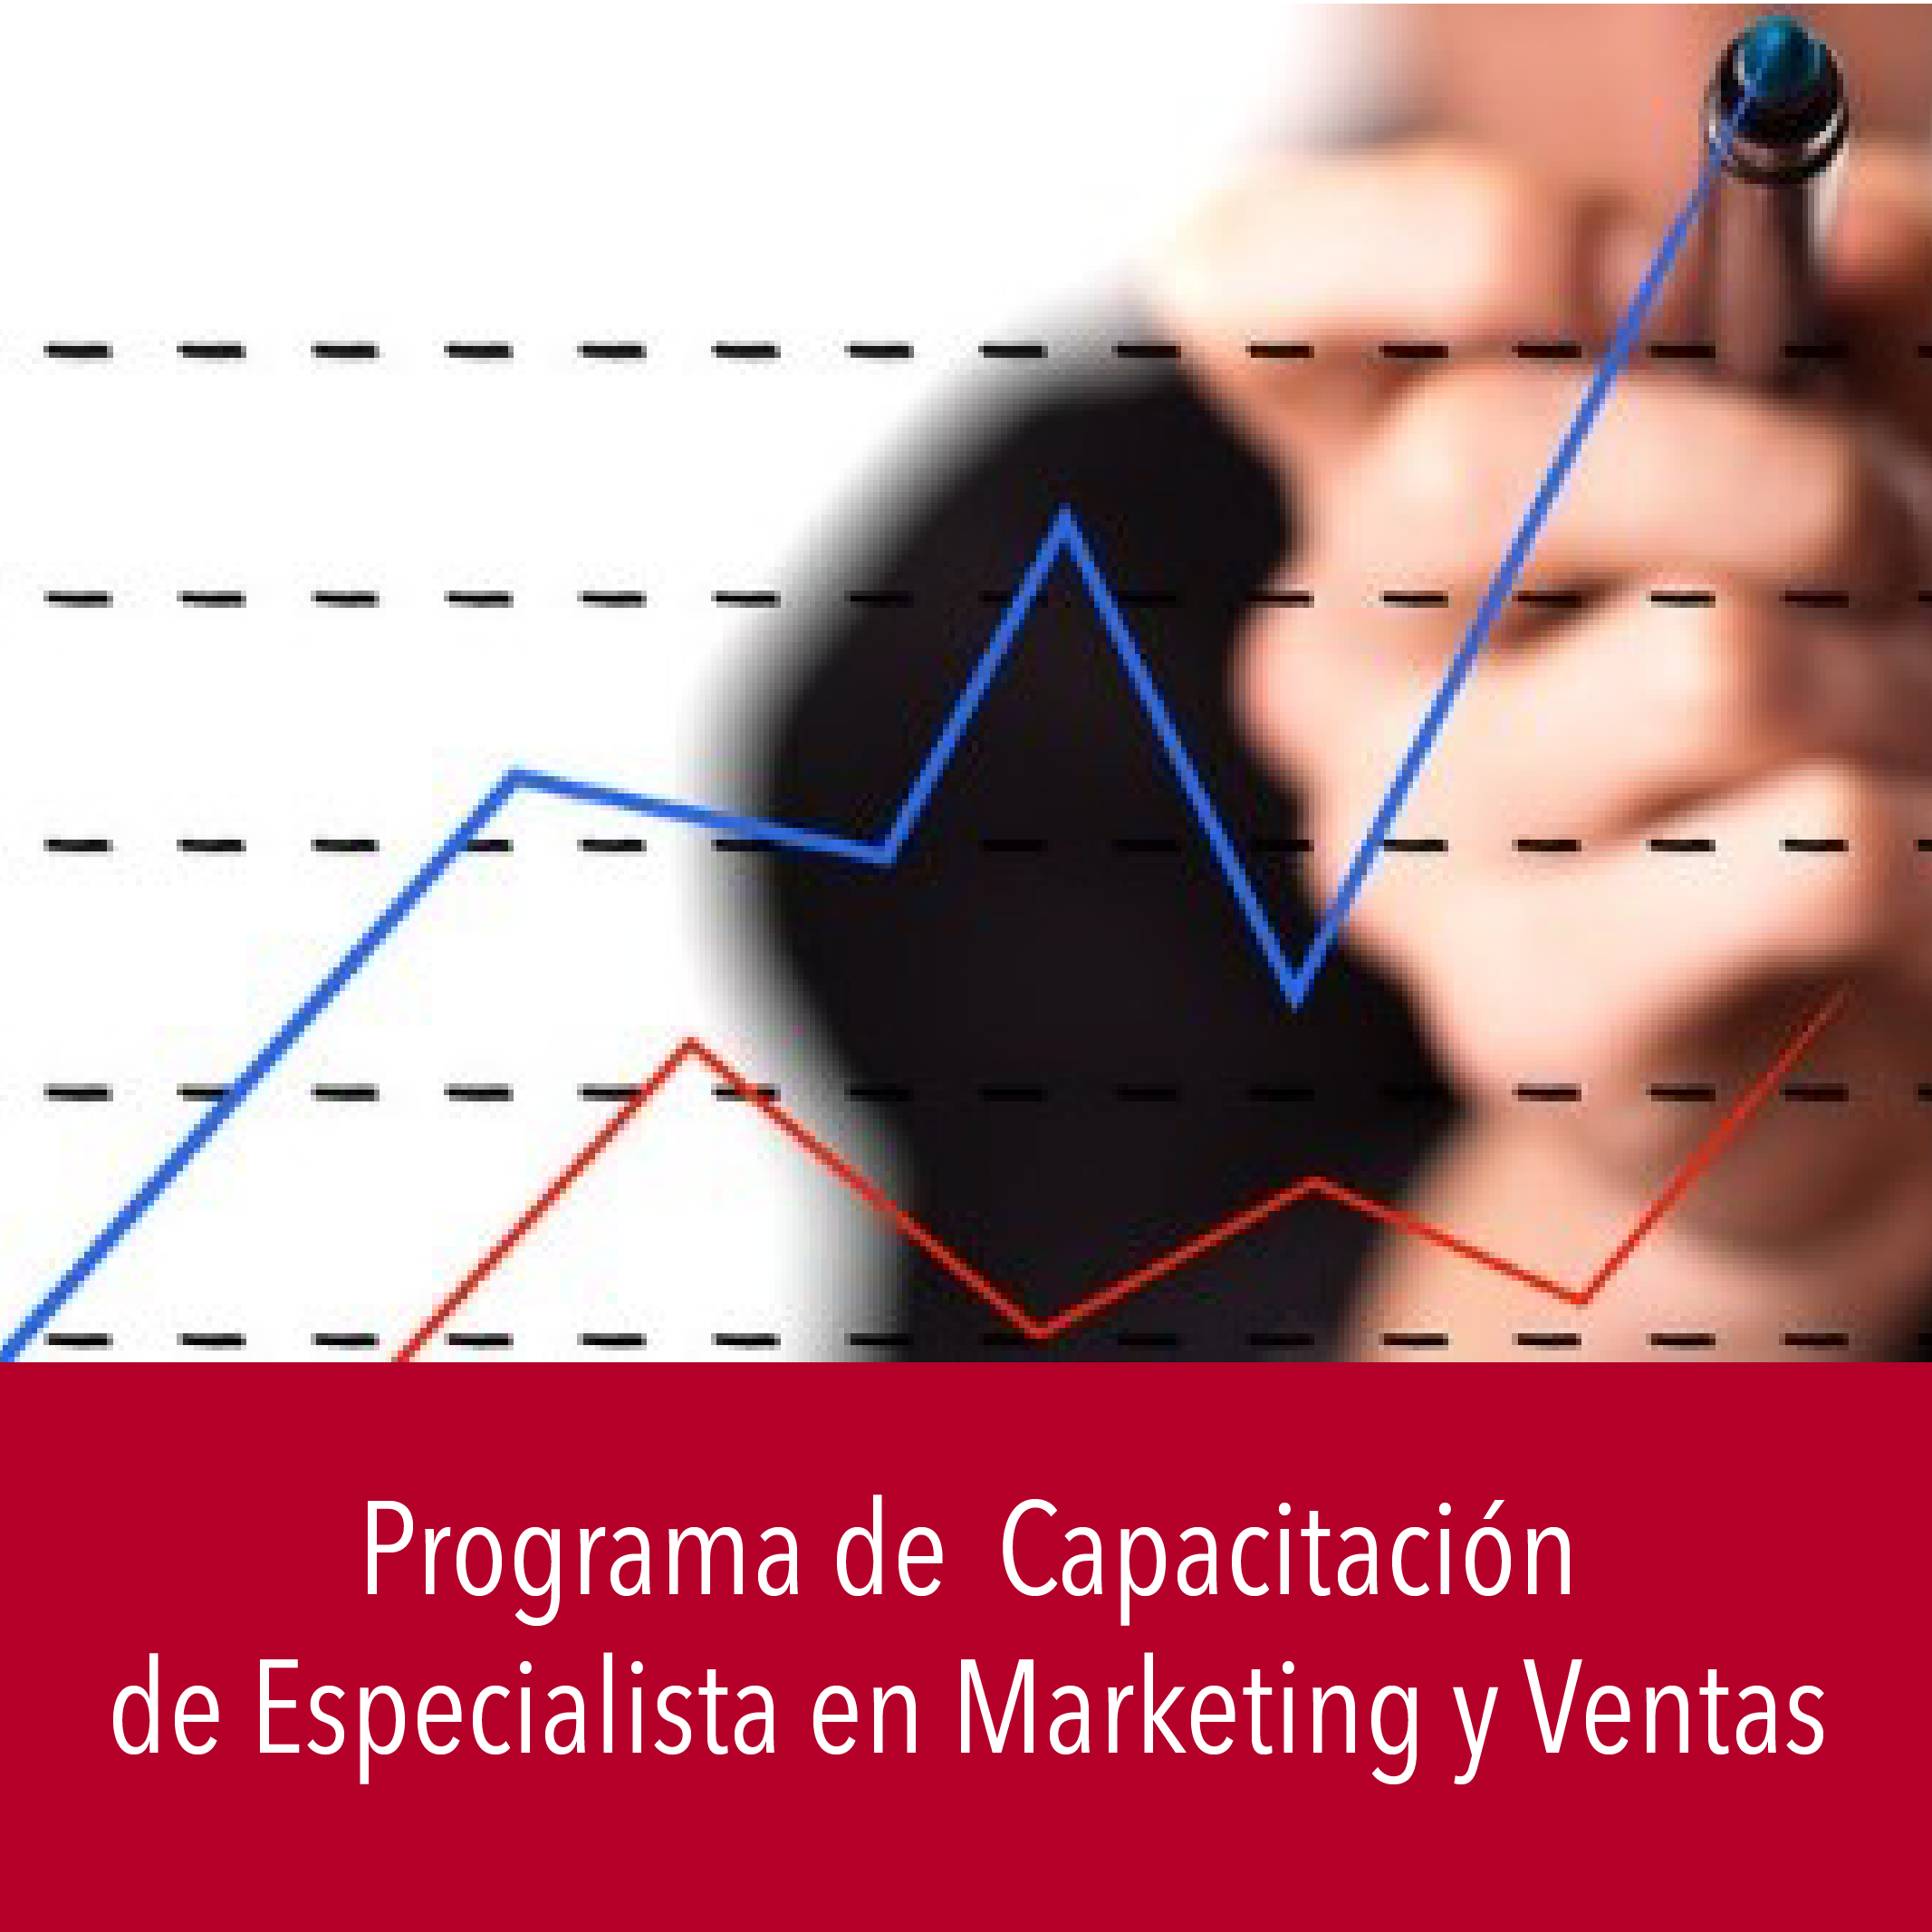 Especialista en Marketing y Ventas